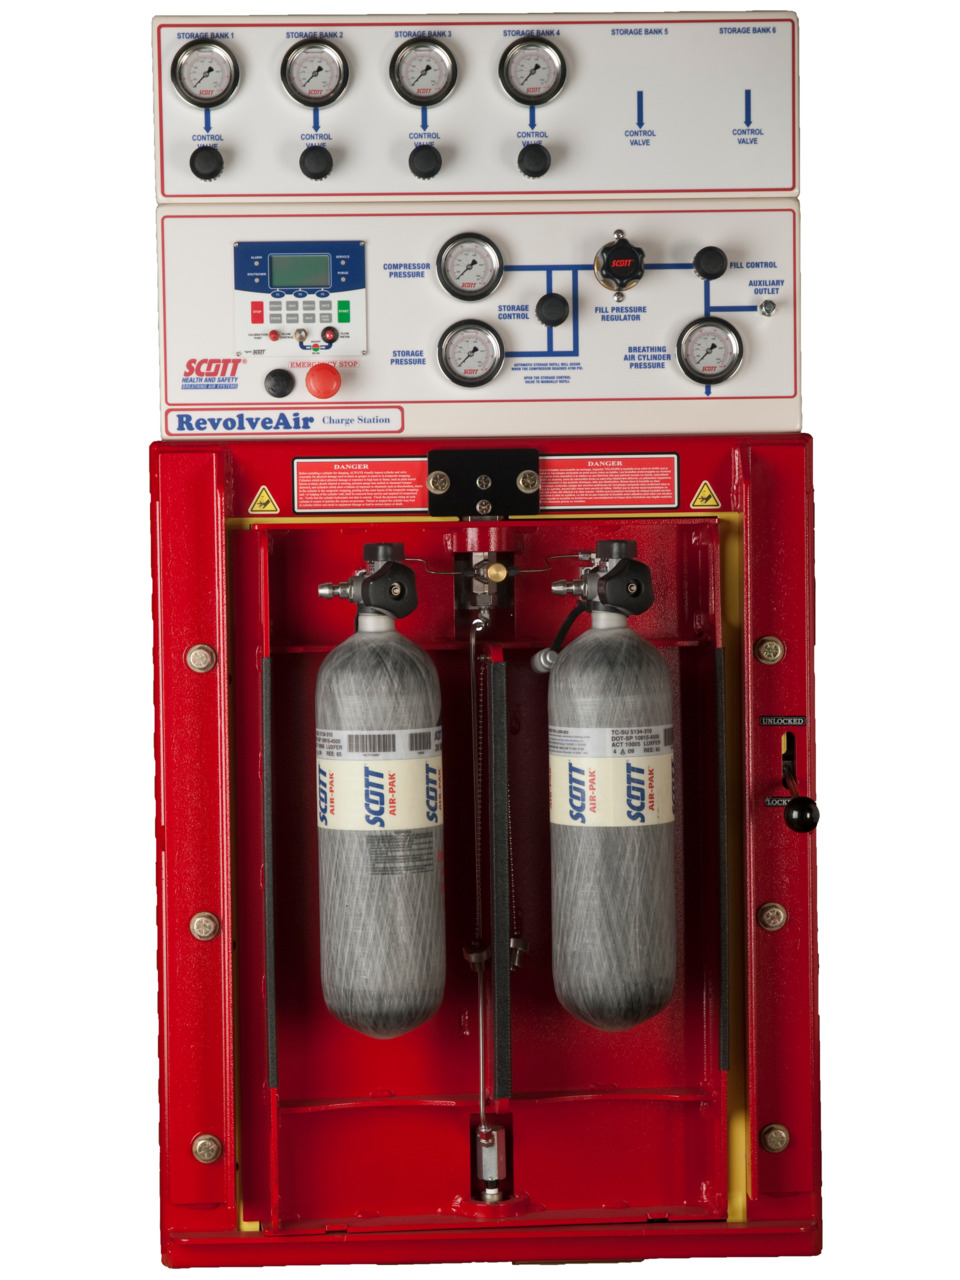 Mobile Air Compressor >> Selecting On-Board Equipment for Fire Apparatus - Fire ...